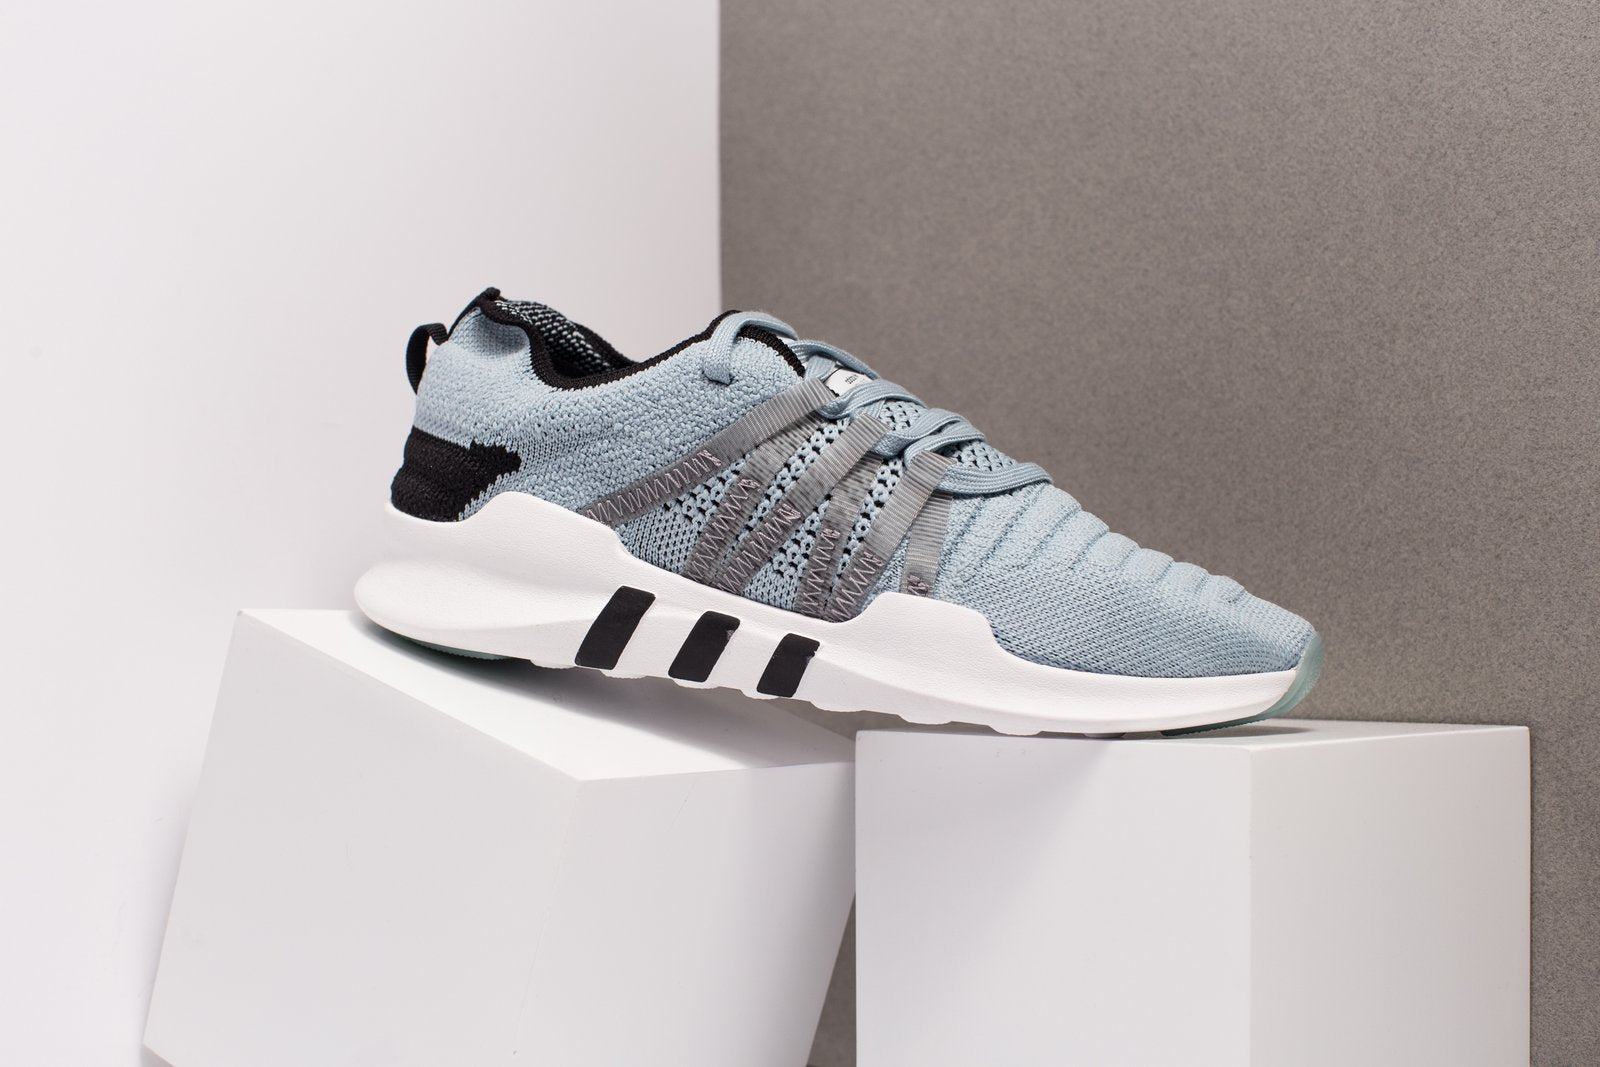 detailed look 1c649 493f7 ADIDAS WOMENS EQT RACING ADV PK